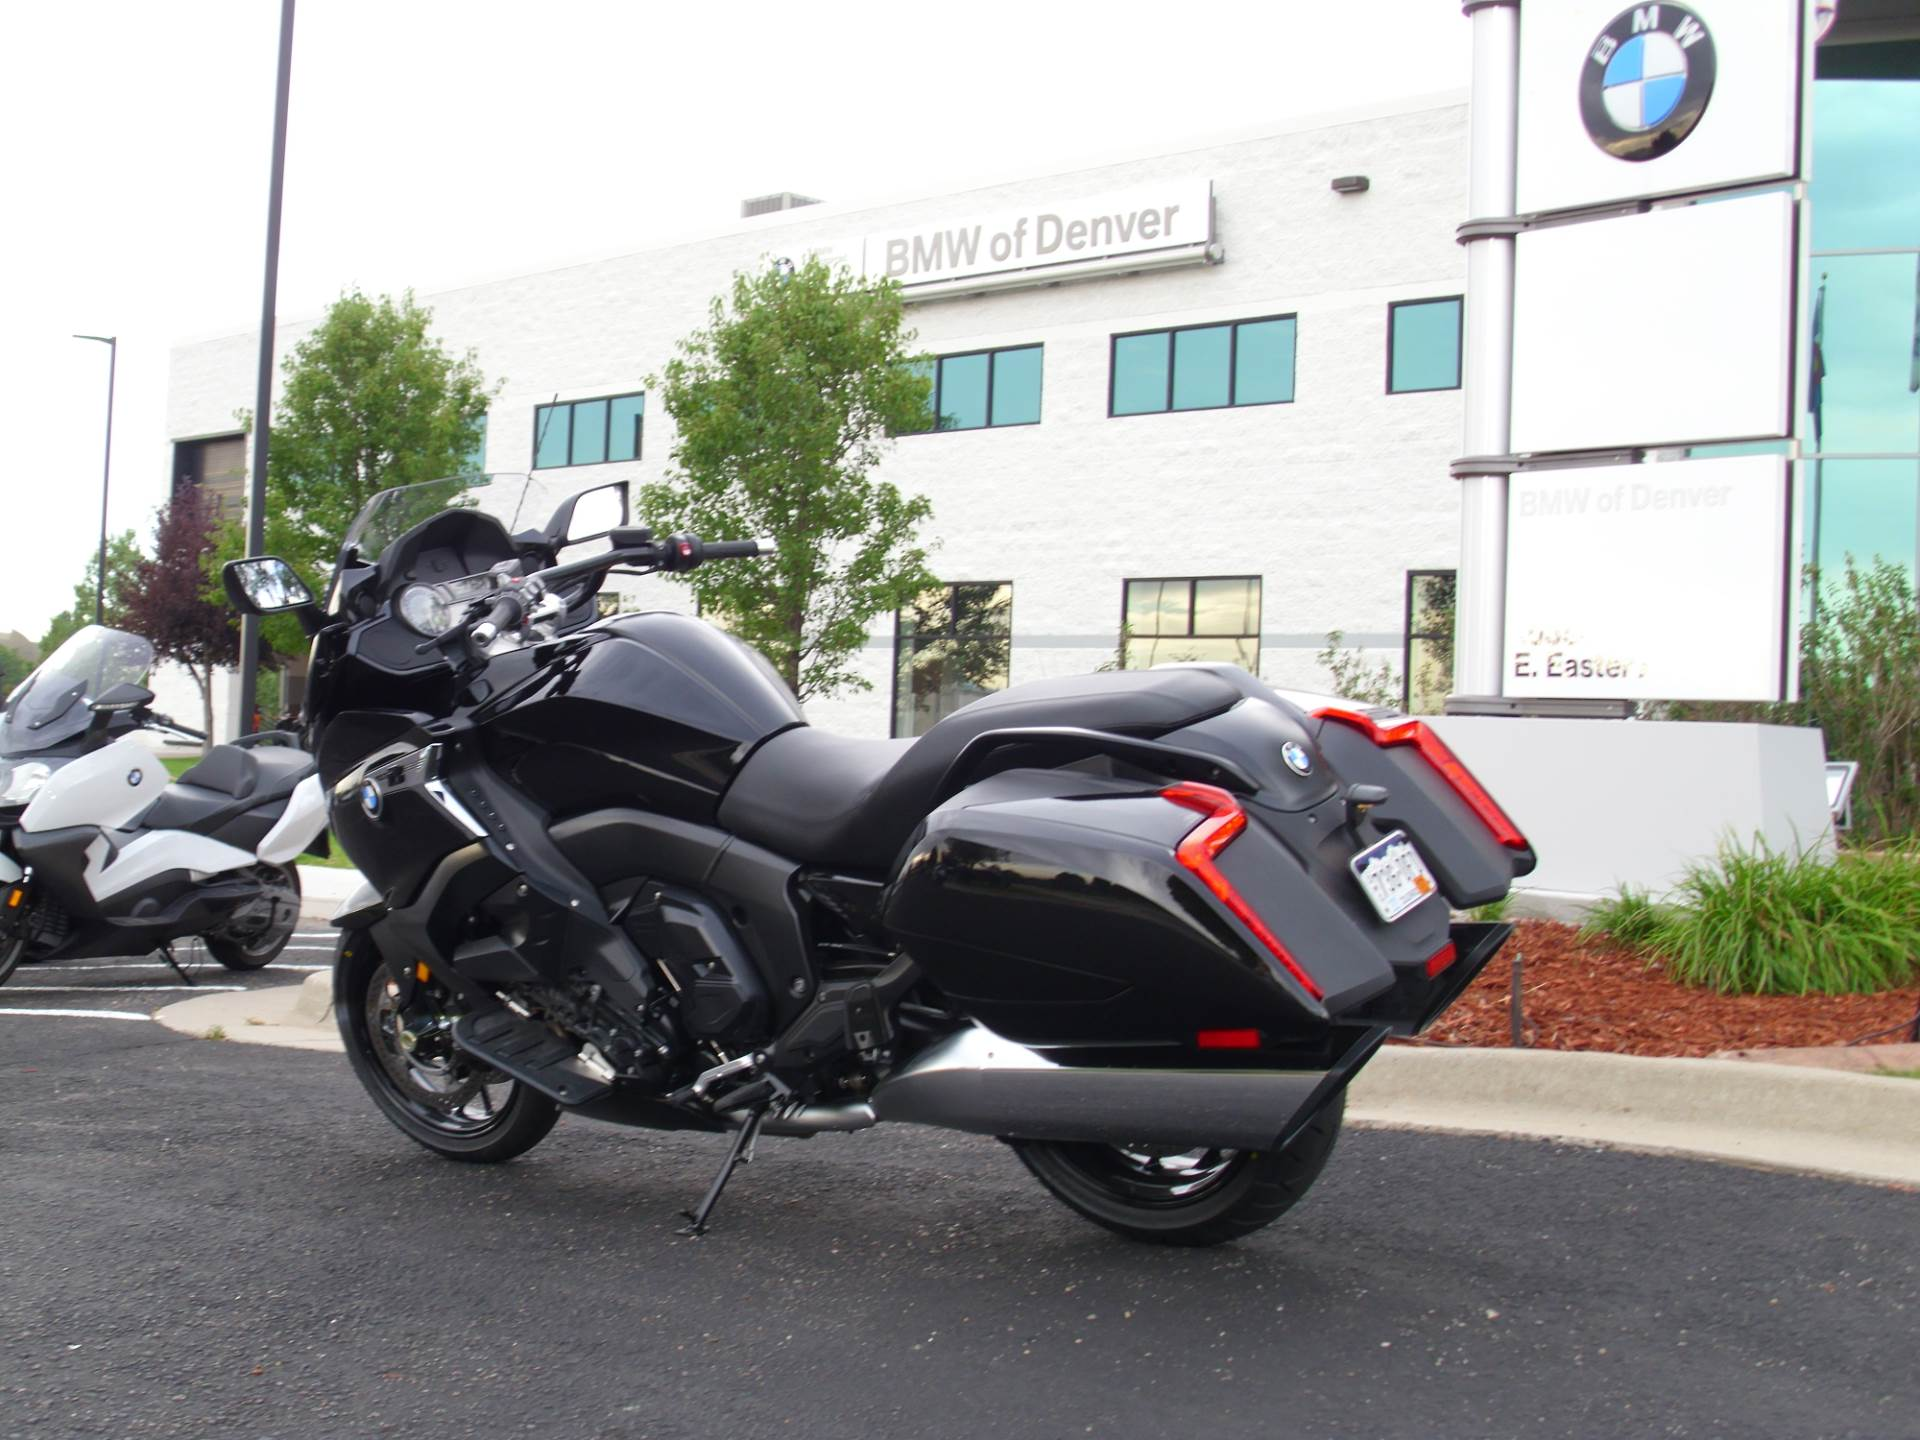 New 2018 BMW K 1600 B Motorcycles in Centennial, CO